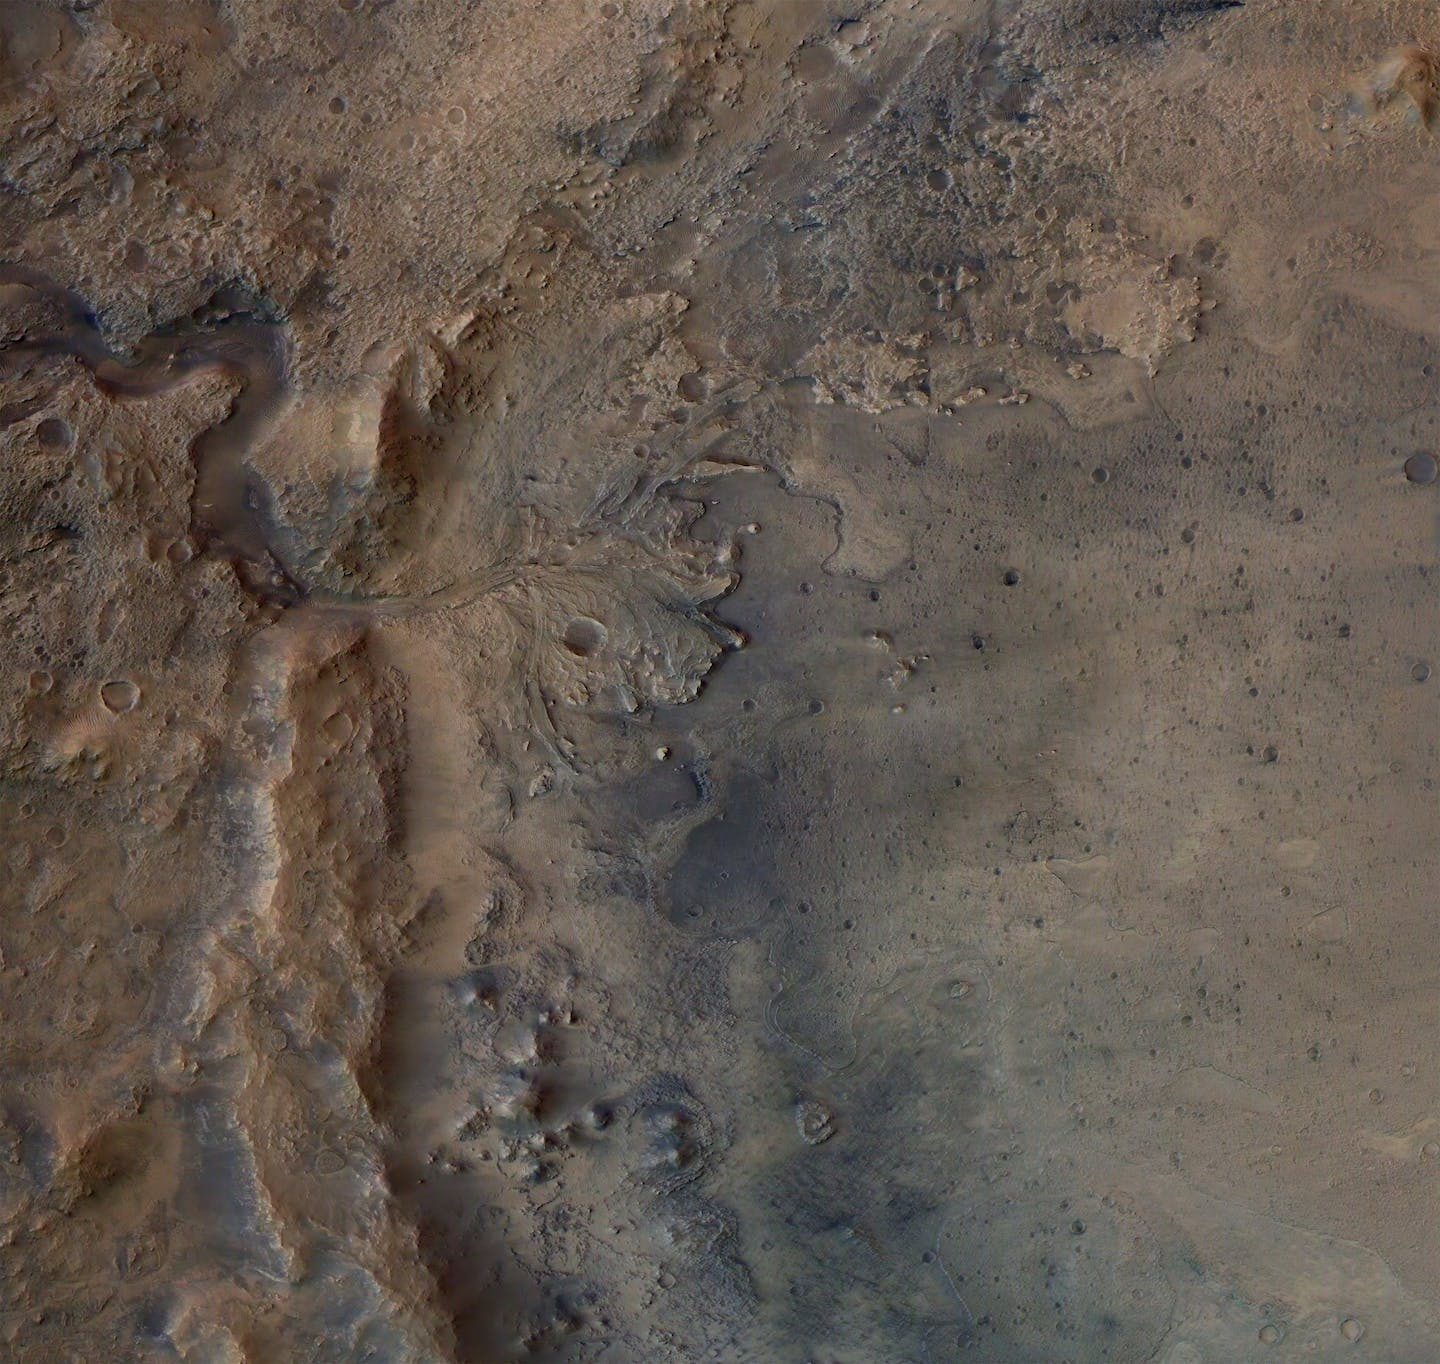 A satellite image showing a delta shaped rock formation on the surface of Mars.